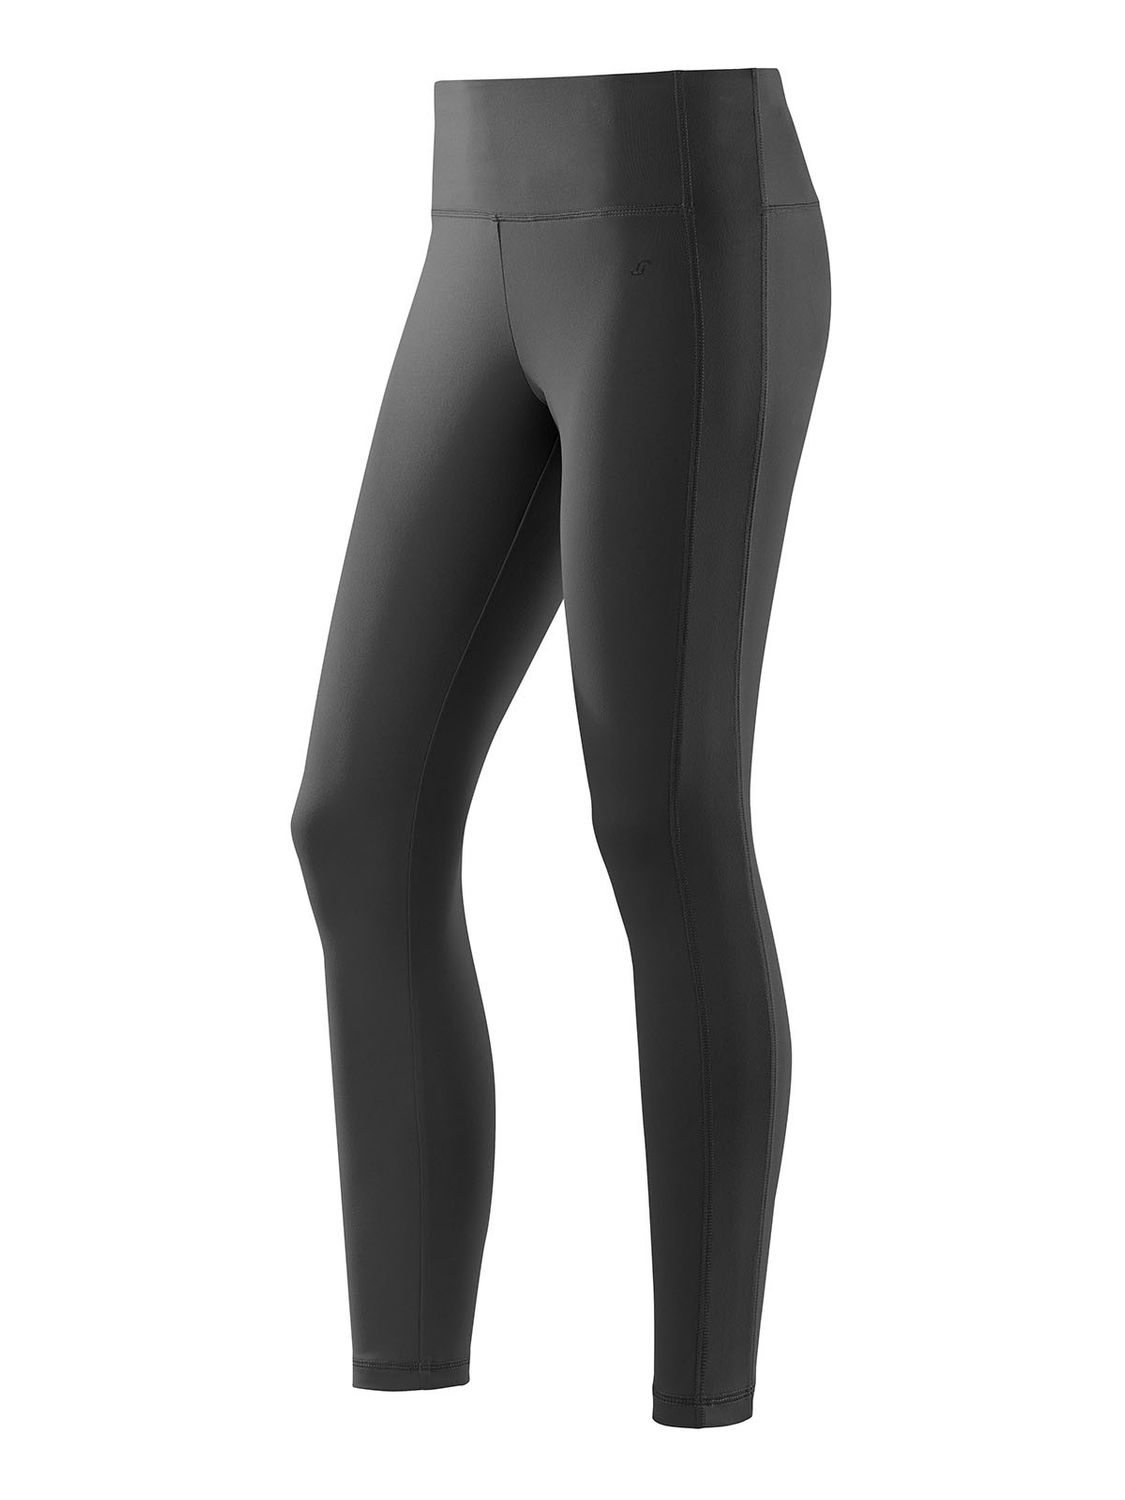 Joy - Bodyfit - Damen Sport Hose mit Shaping-Effekt, Michella (30141) 001